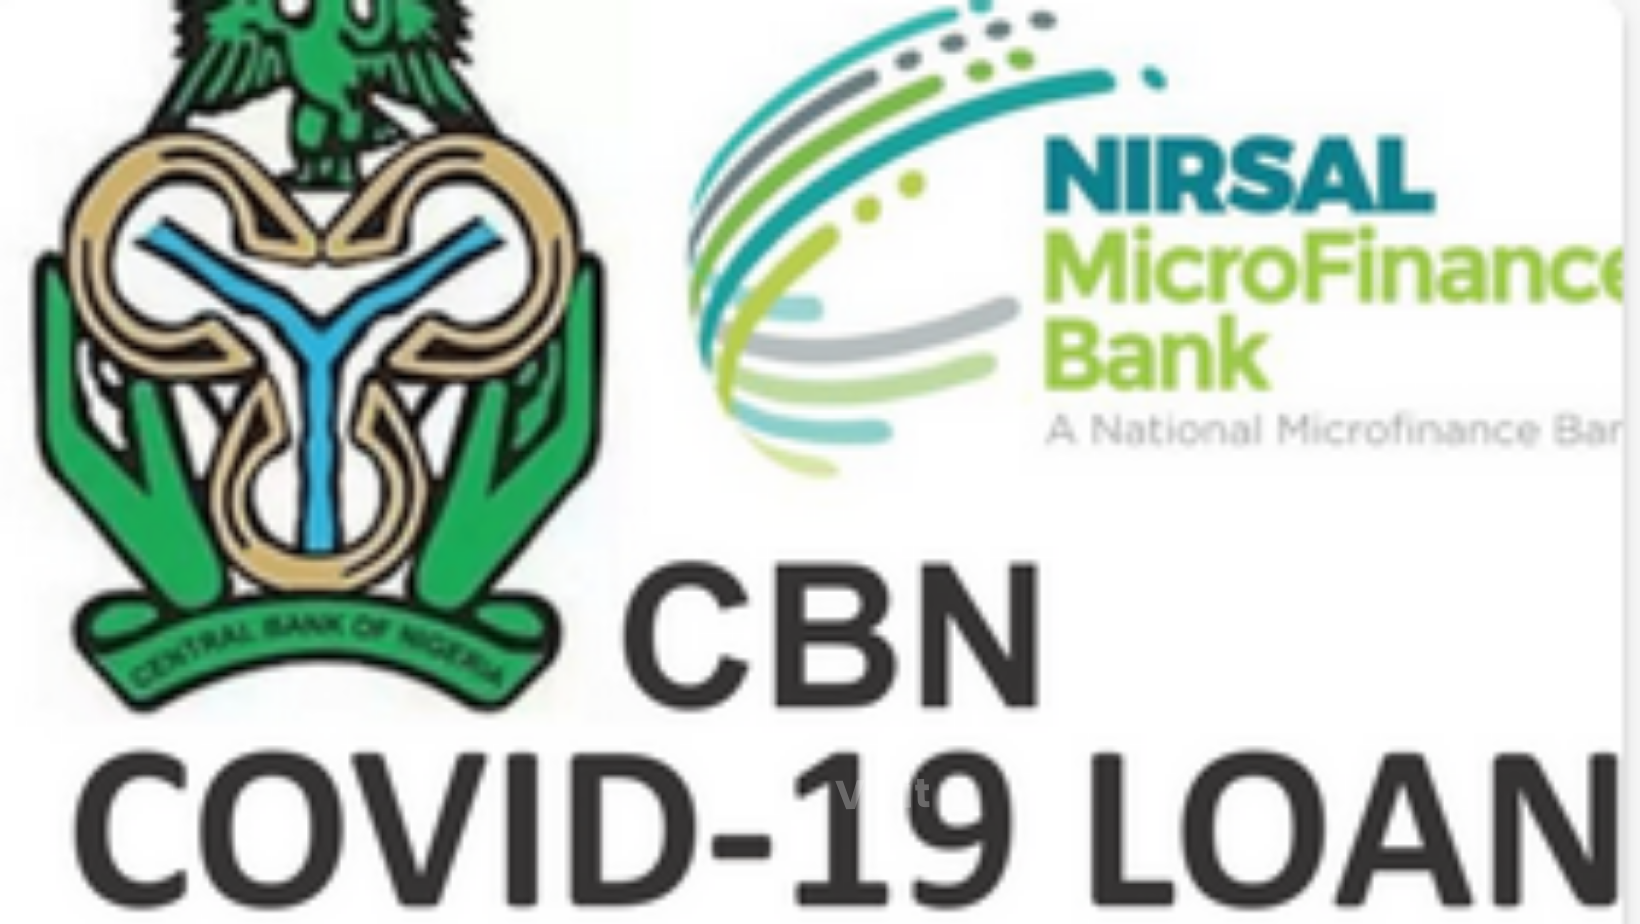 You are currently viewing Covid-19 Nirsal Microfinance Bank Loan Application Portal